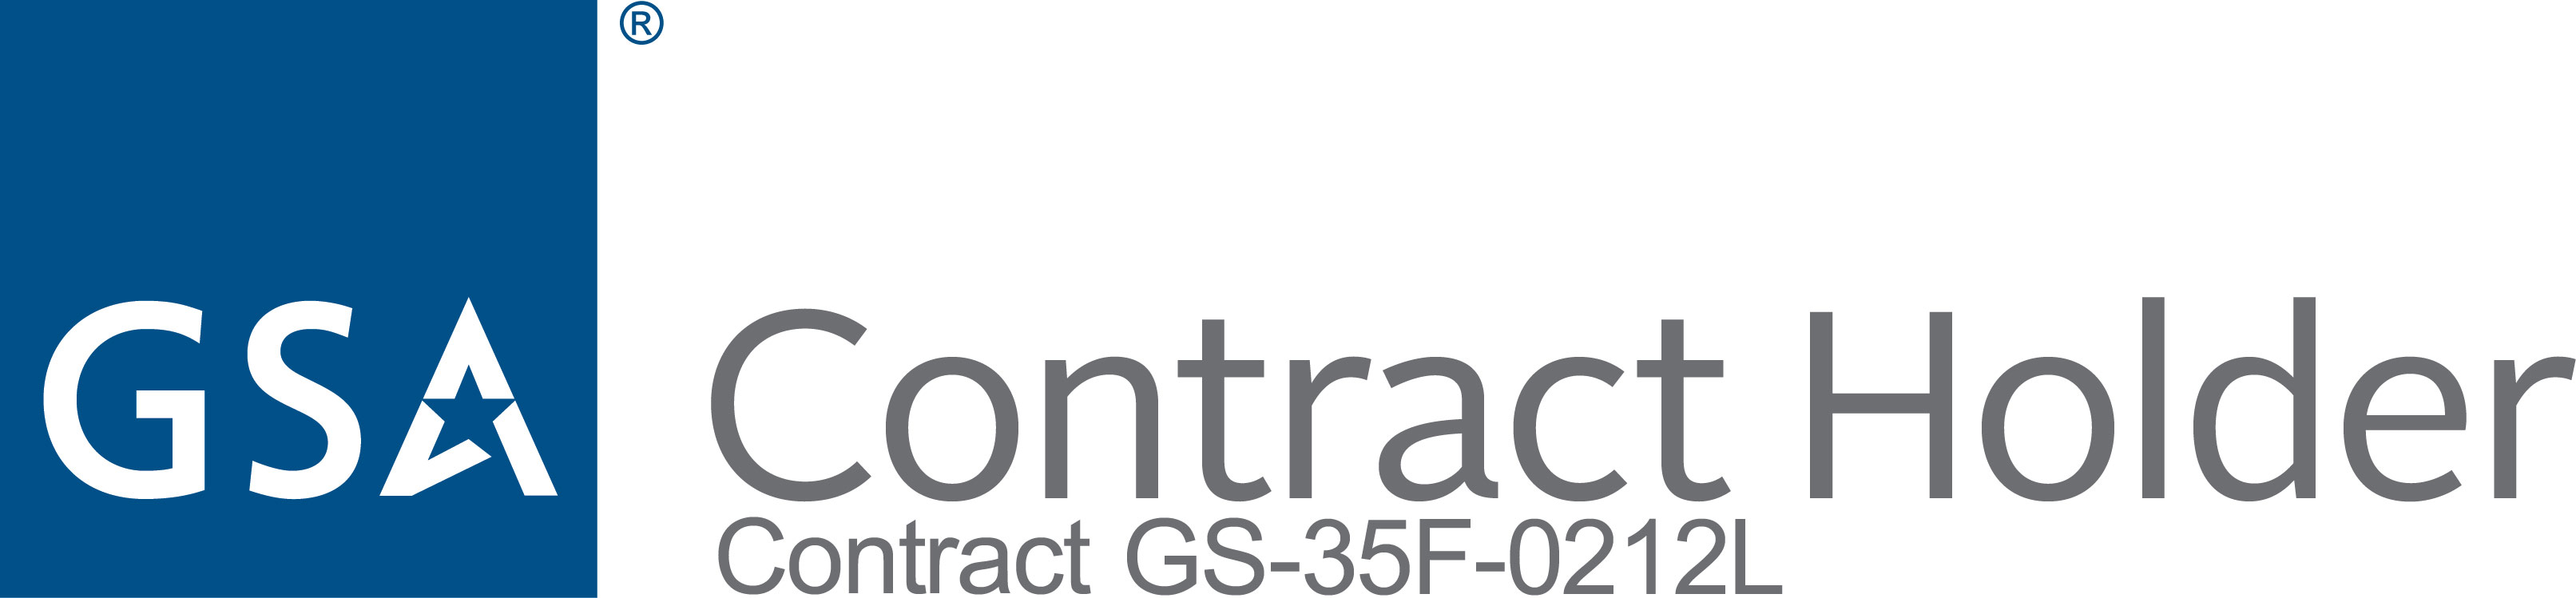 Contract_Holder_StarMark